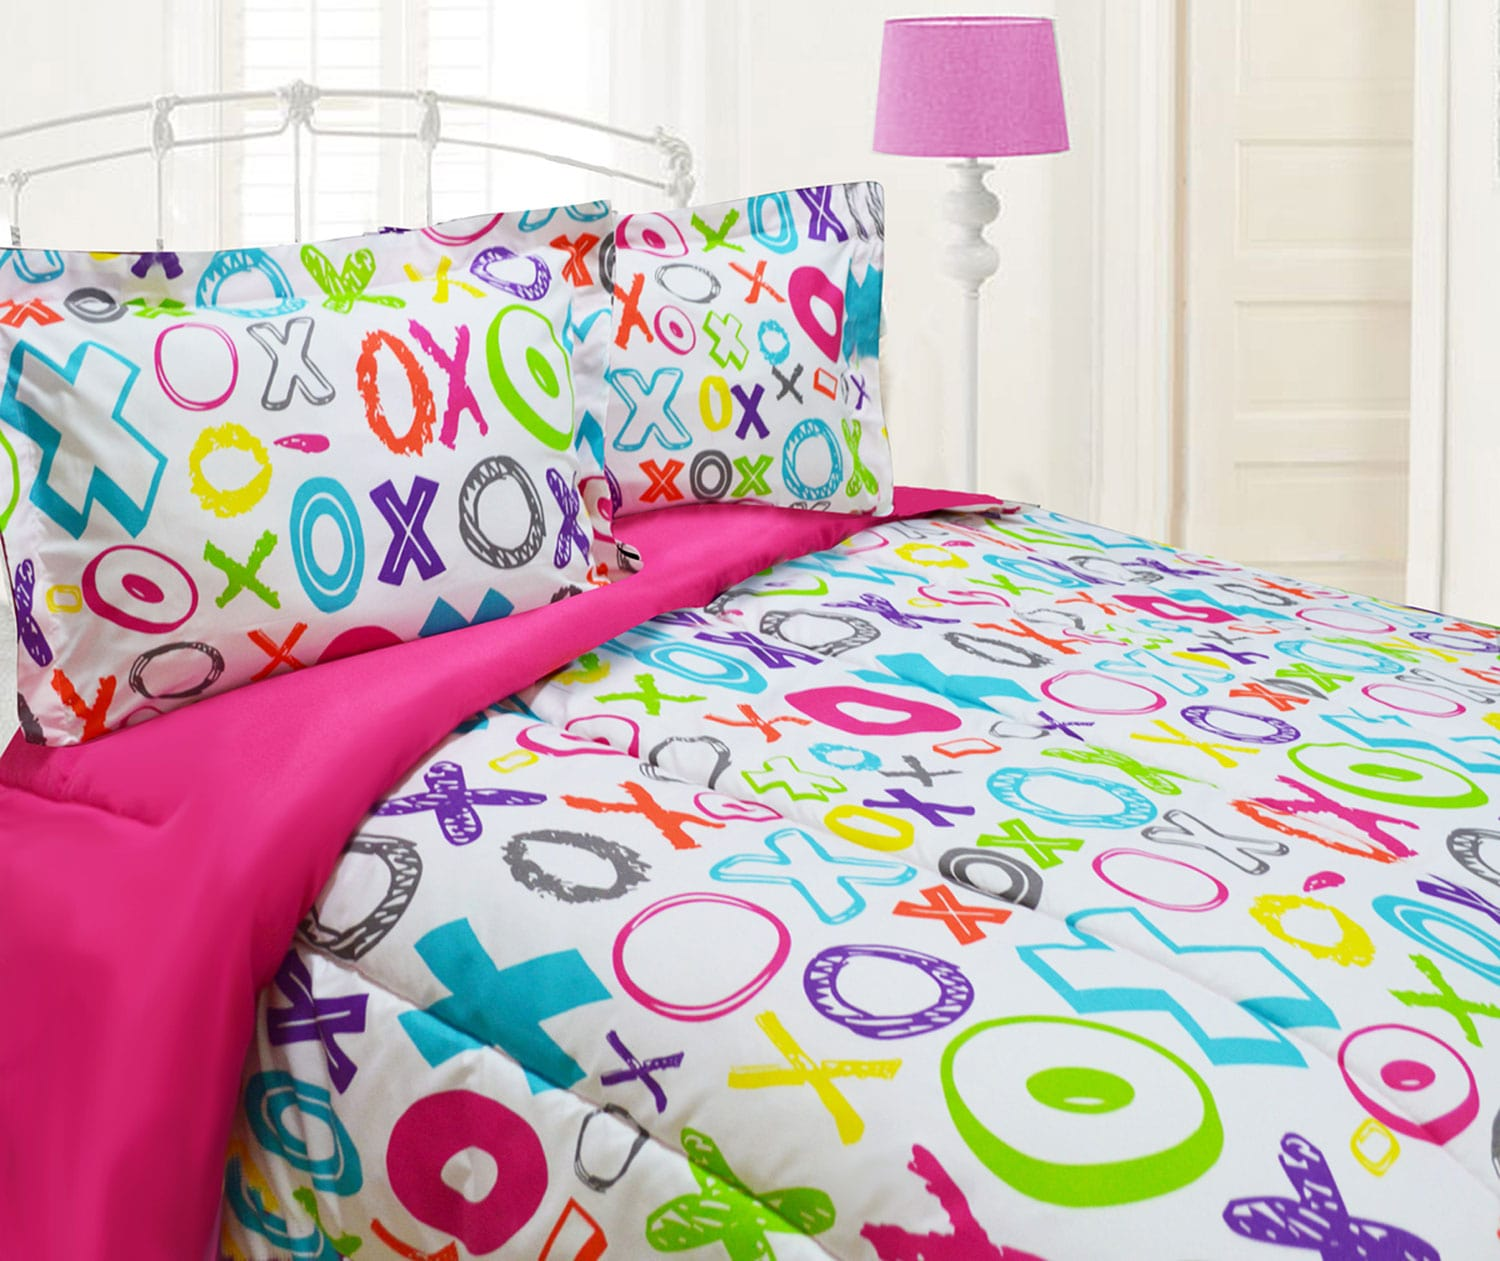 XOXO 2-Piece Twin Comforter Set